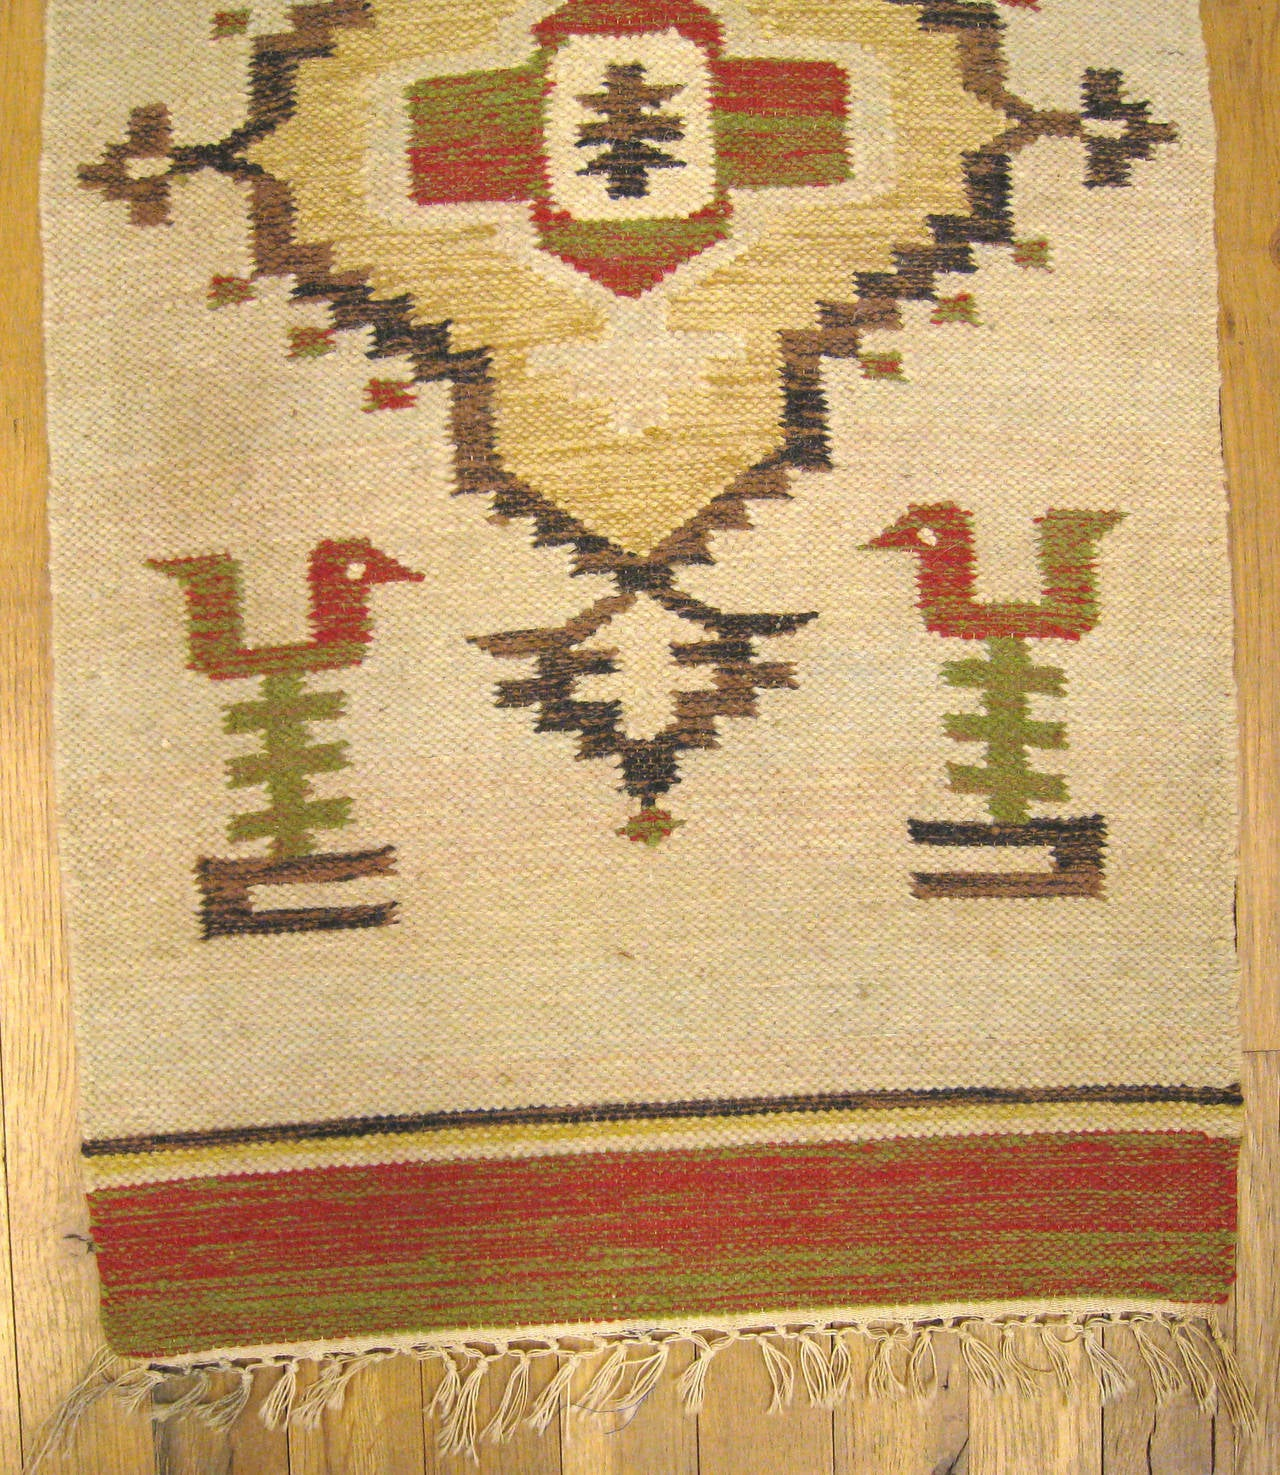 Vintage Mexican Zapotec Pictorial Rug At 1stdibs: Vintage Mexican Zapotec Decorative Carpet, In Small Size W